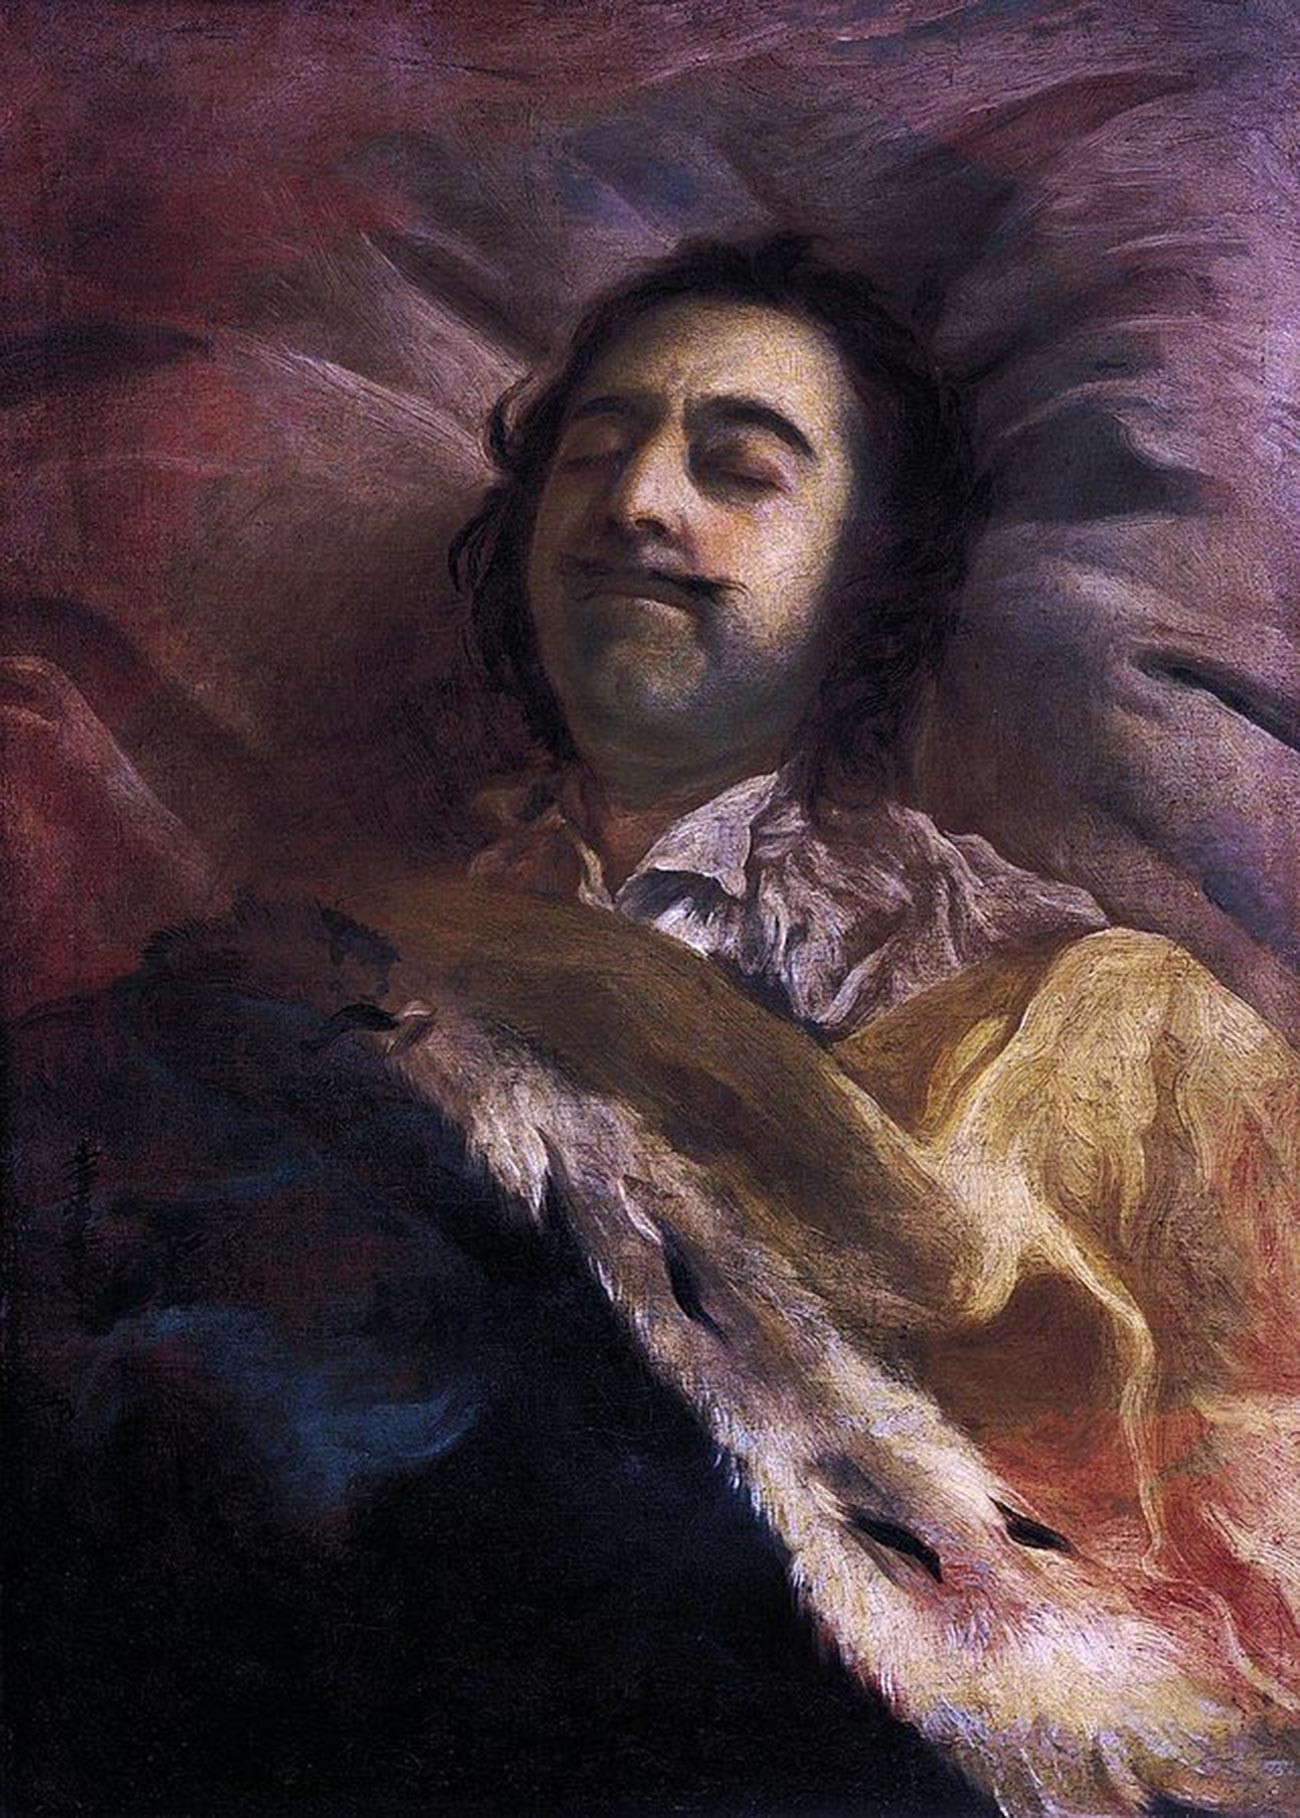 Peter the Great on his deathbed